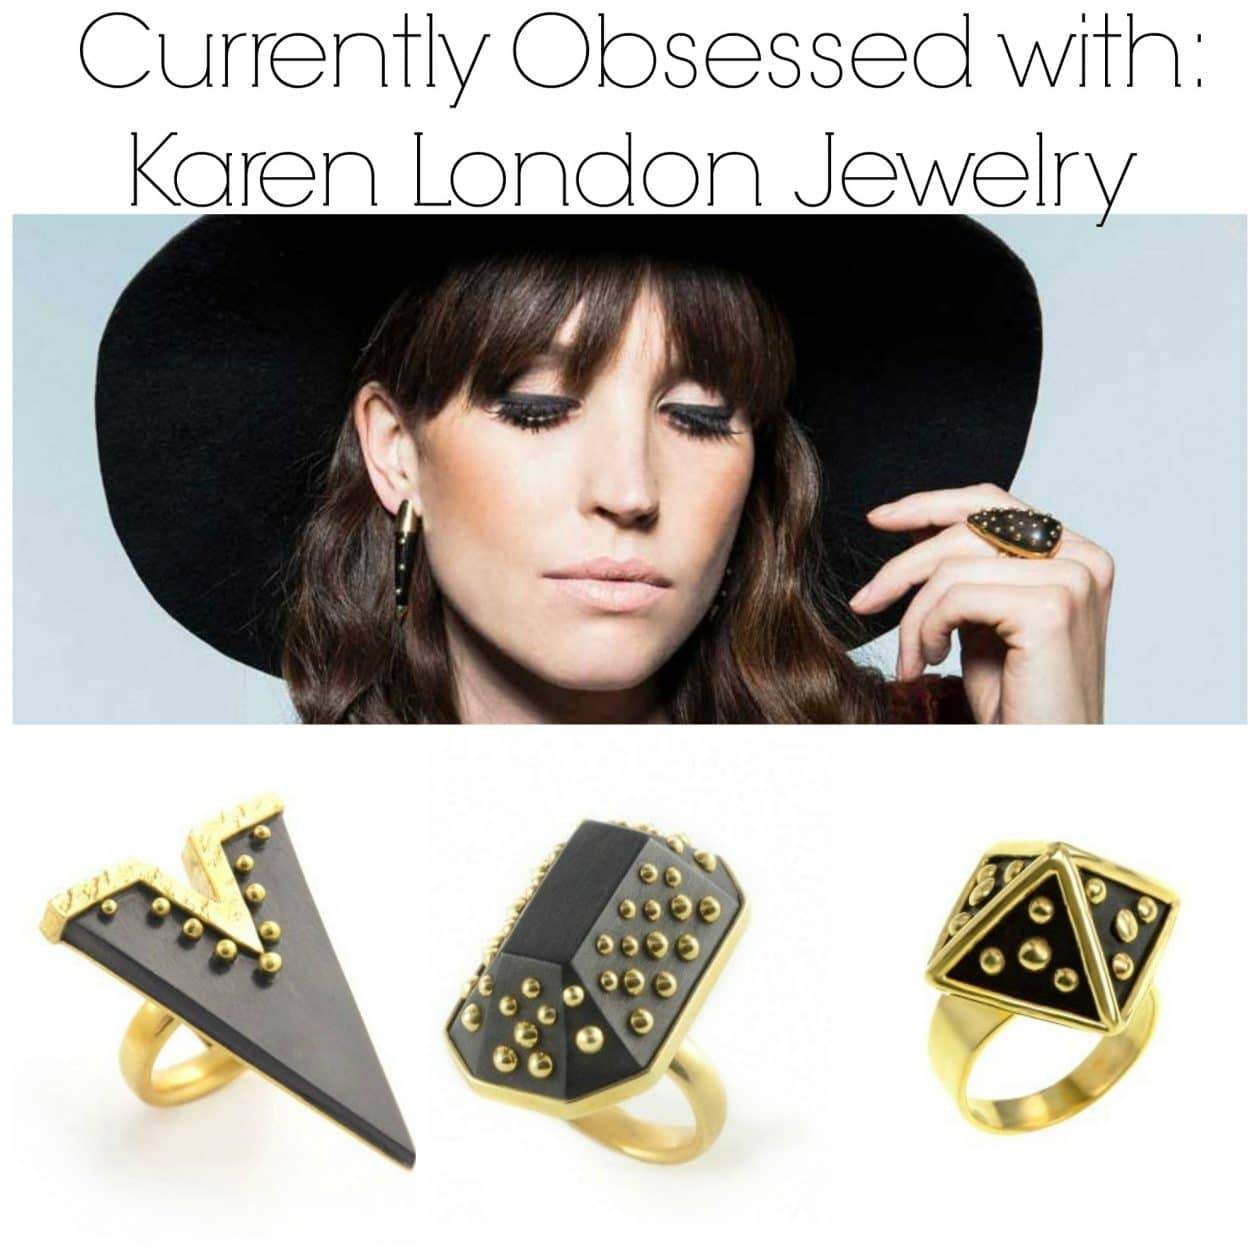 Los Angeles Jewelry Designer Karen London